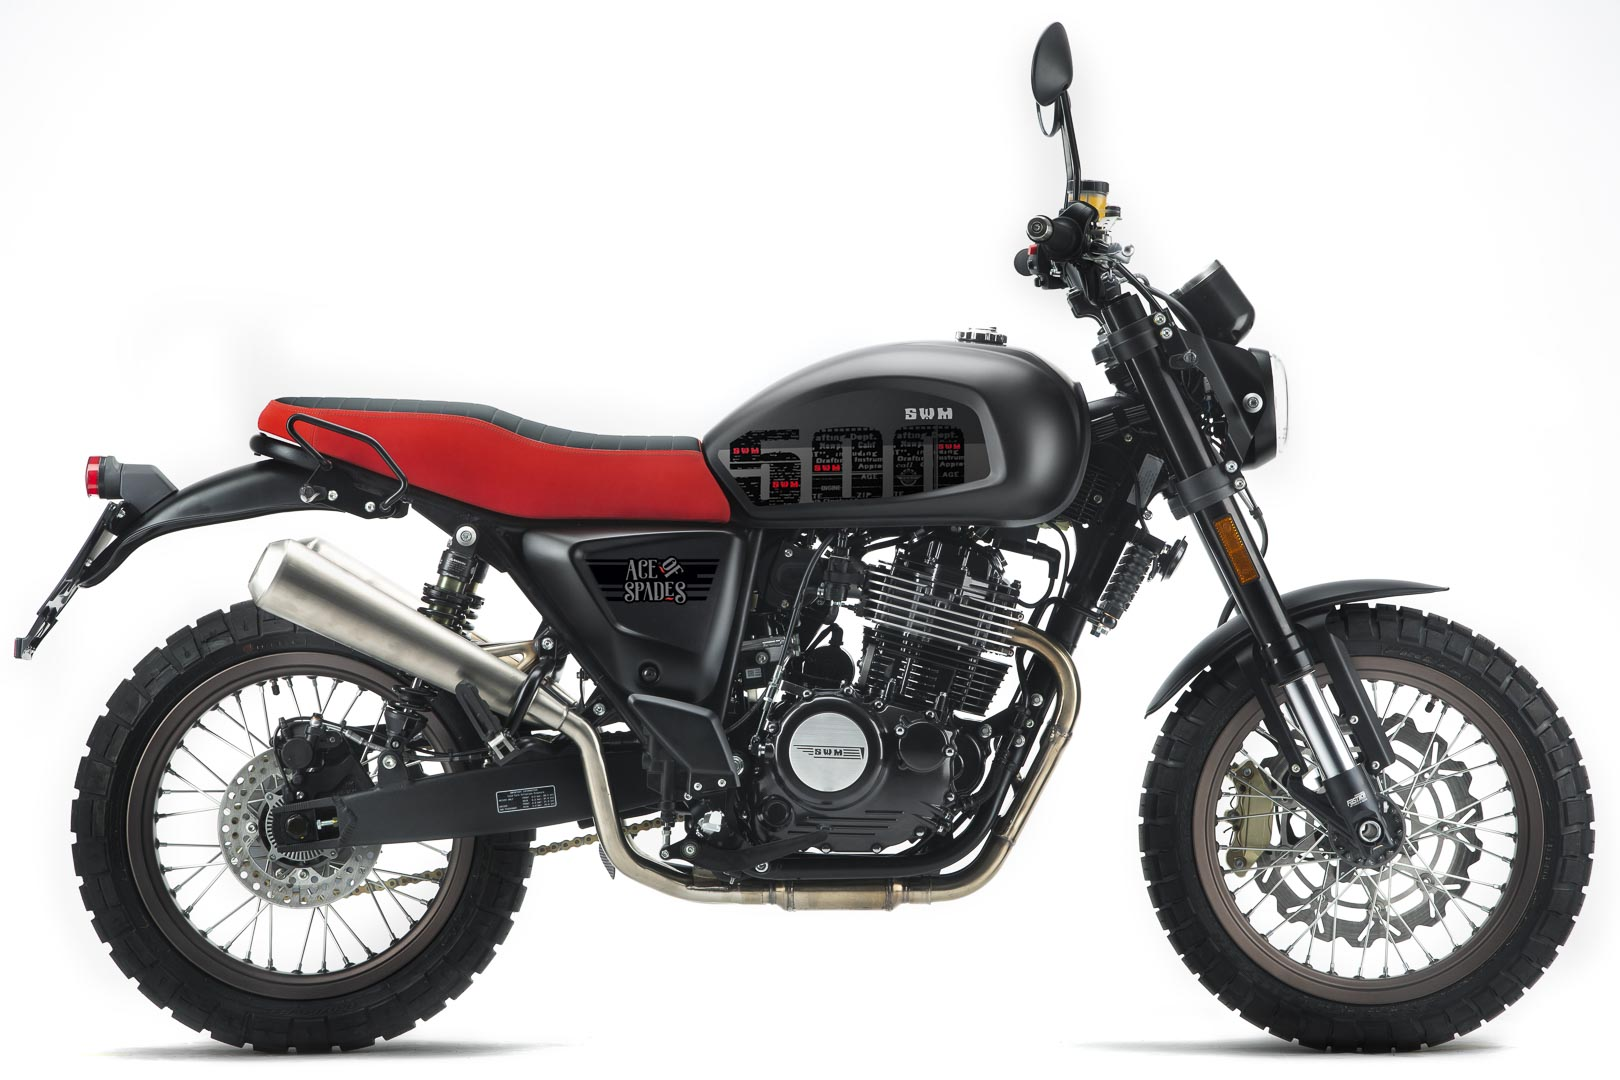 2020 SWM Ace of Spades 500 First Look - restromod